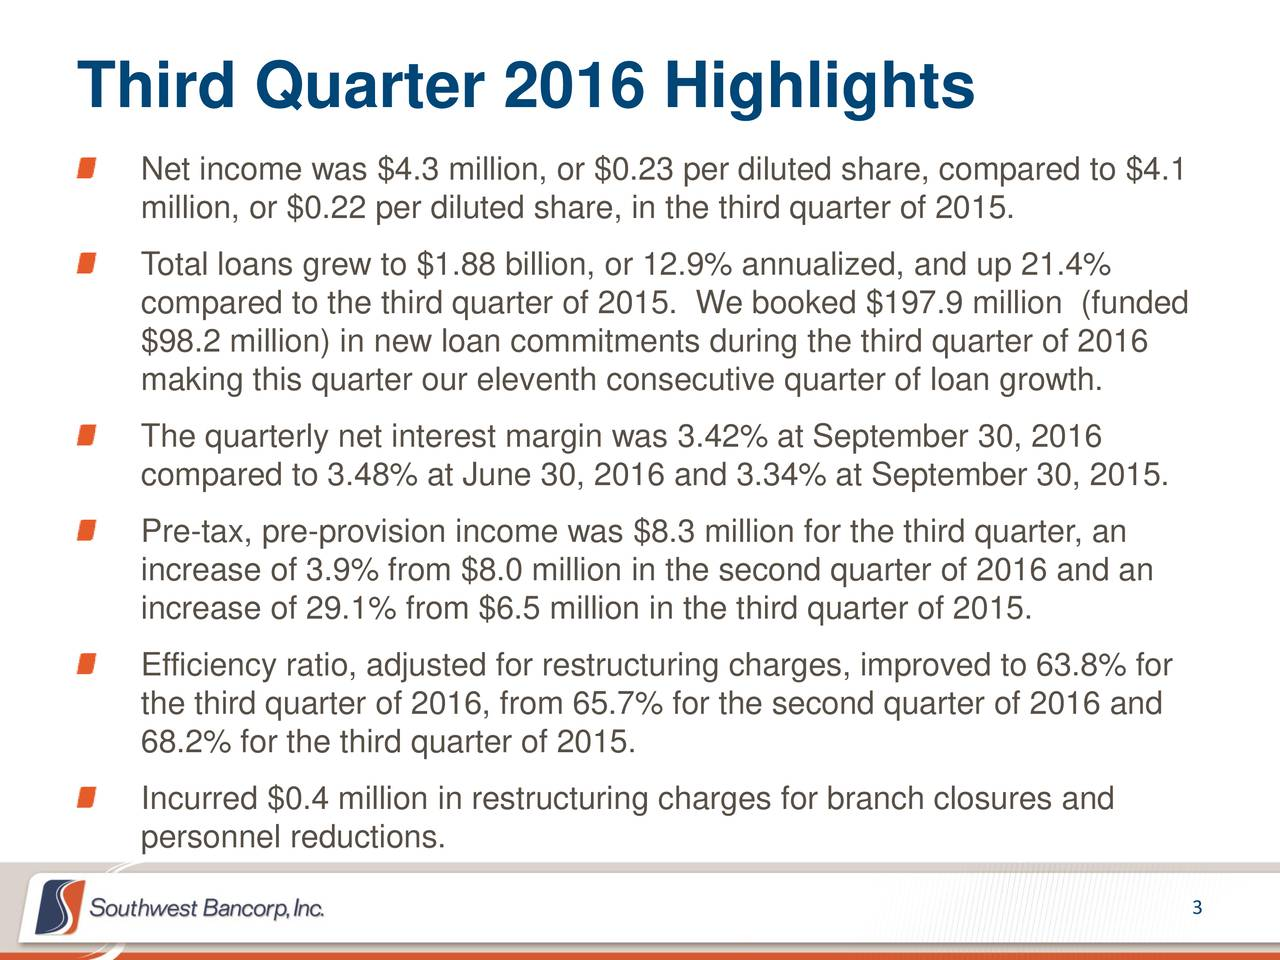 Net income was $4.3 million, or $0.23 per diluted share, compared to $4.1 million, or $0.22 per diluted share, in the third quarter of 2015. Total loans grew to $1.88 billion, or 12.9% annualized, and up 21.4% compared to the third quarter of 2015. We booked $197.9 million (funded $98.2 million) in new loan commitments during the third quarter of 2016 making this quarter our eleventh consecutive quarter of loan growth. The quarterly net interest margin was 3.42% at September 30, 2016 compared to 3.48% at June 30, 2016 and 3.34% at September 30, 2015. Pre-tax, pre-provision income was $8.3 million for the third quarter, an increase of 3.9% from $8.0 million in the second quarter of 2016 and an increase of 29.1% from $6.5 million in the third quarter of 2015. Efficiency ratio, adjusted for restructuring charges, improved to 63.8% for the third quarter of 2016, from 65.7% for the second quarter of 2016 and 68.2% for the third quarter of 2015. Incurred $0.4 million in restructuring charges for branch closures and personnel reductions. 3